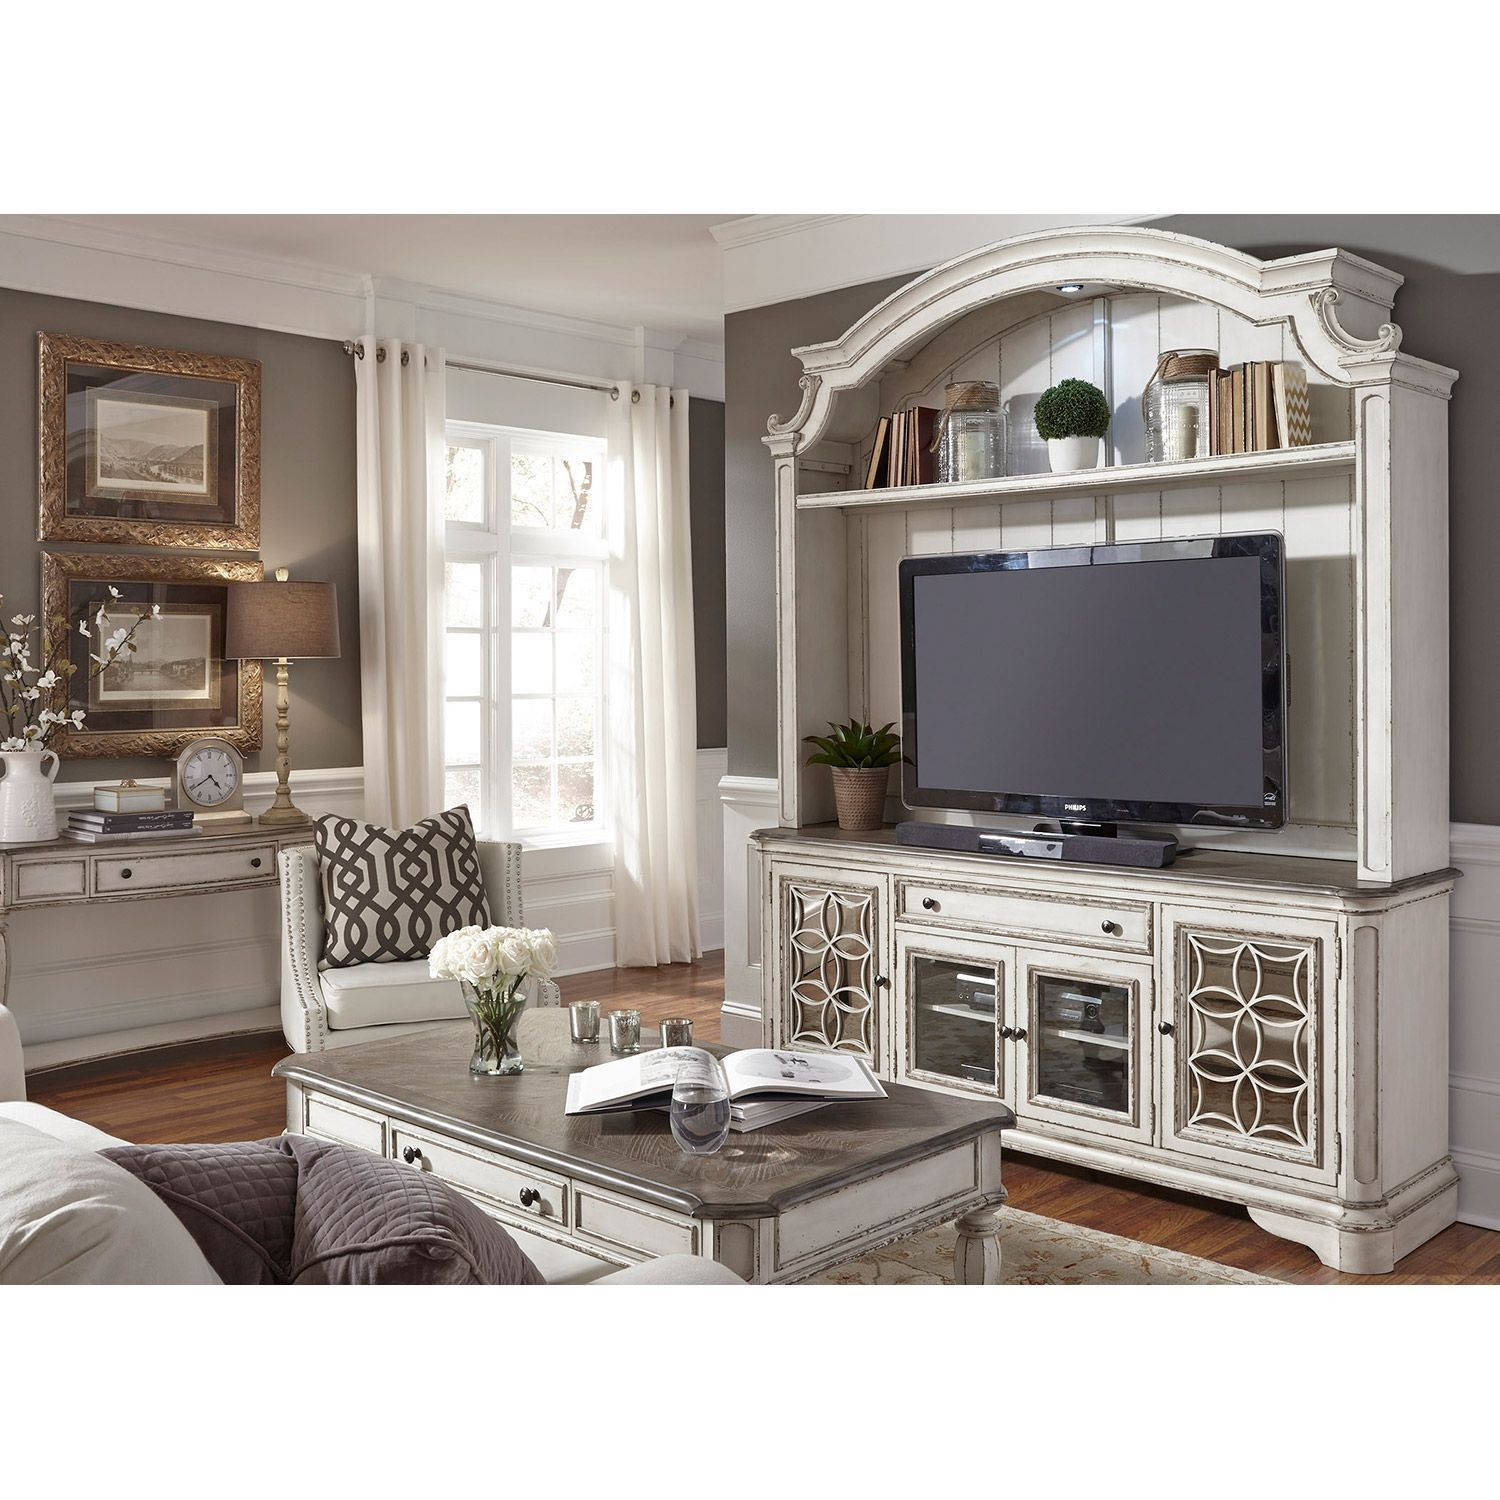 Magnolia manor tv stand with hutch remodel ideas pinterest tv